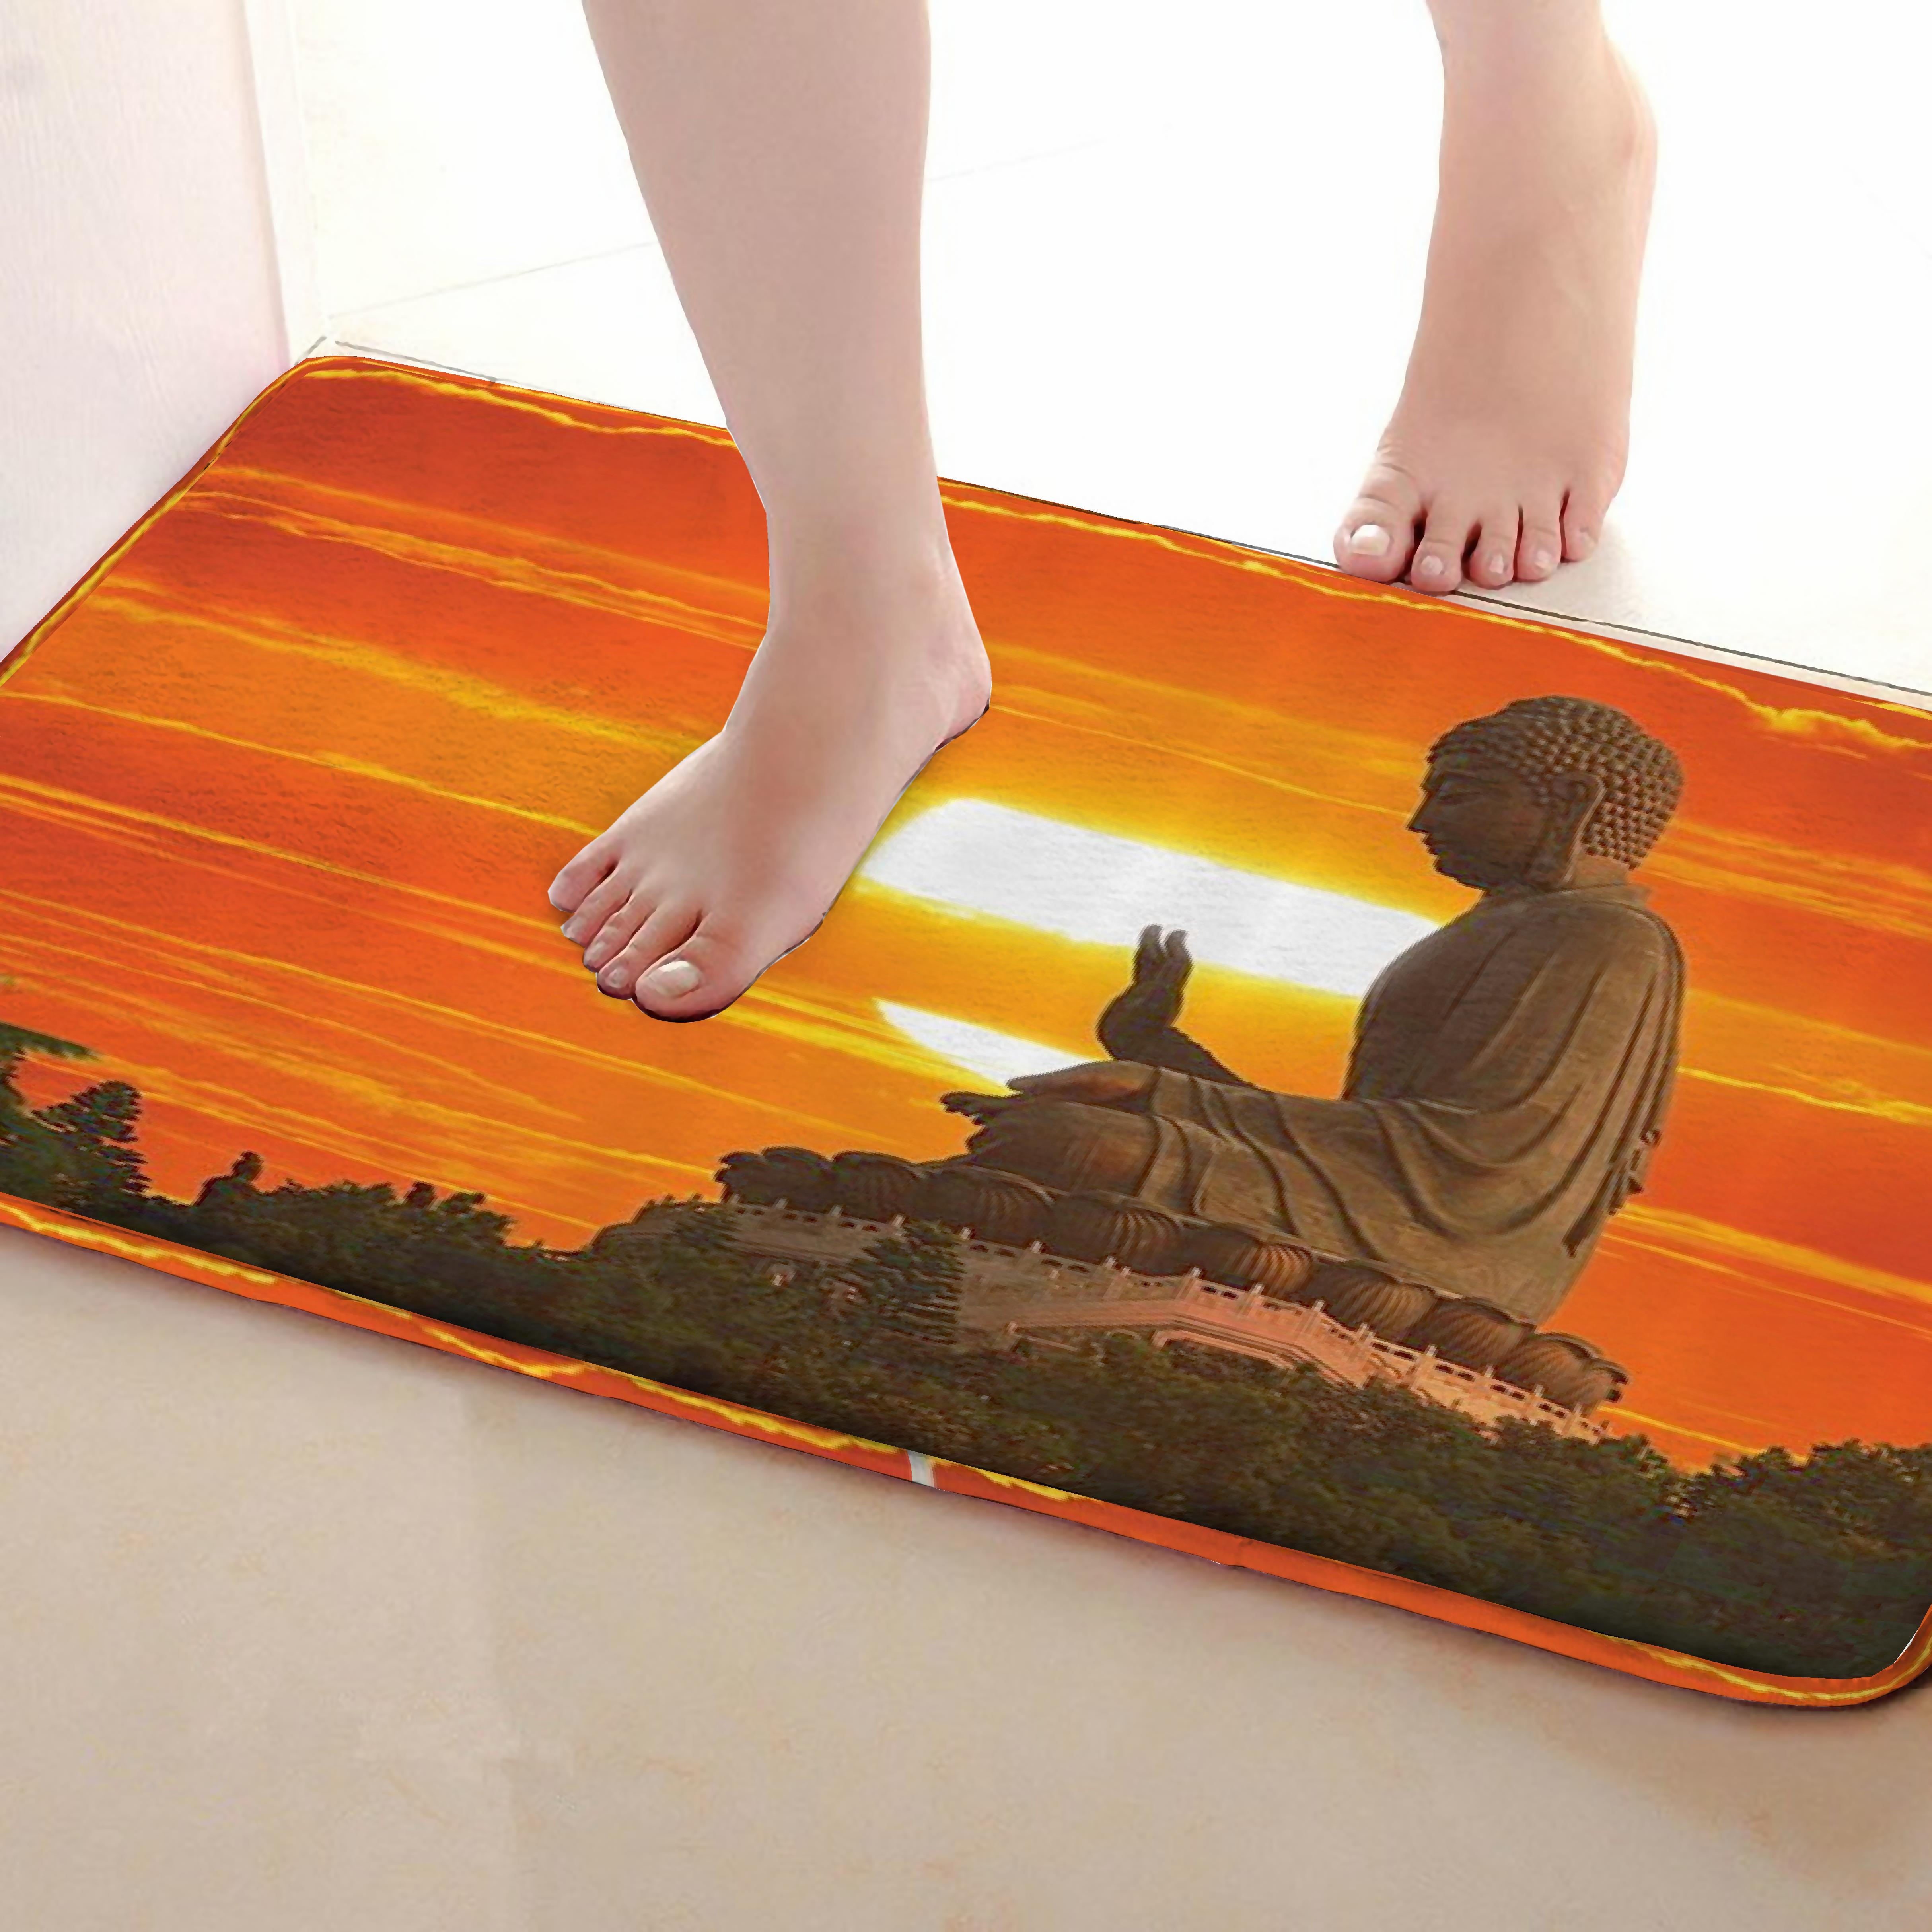 Buddha statue Style Bathroom Mat,Funny Anti skid Bath Mat,Shower Curtains Accessories,Matching Your Shower Curtain